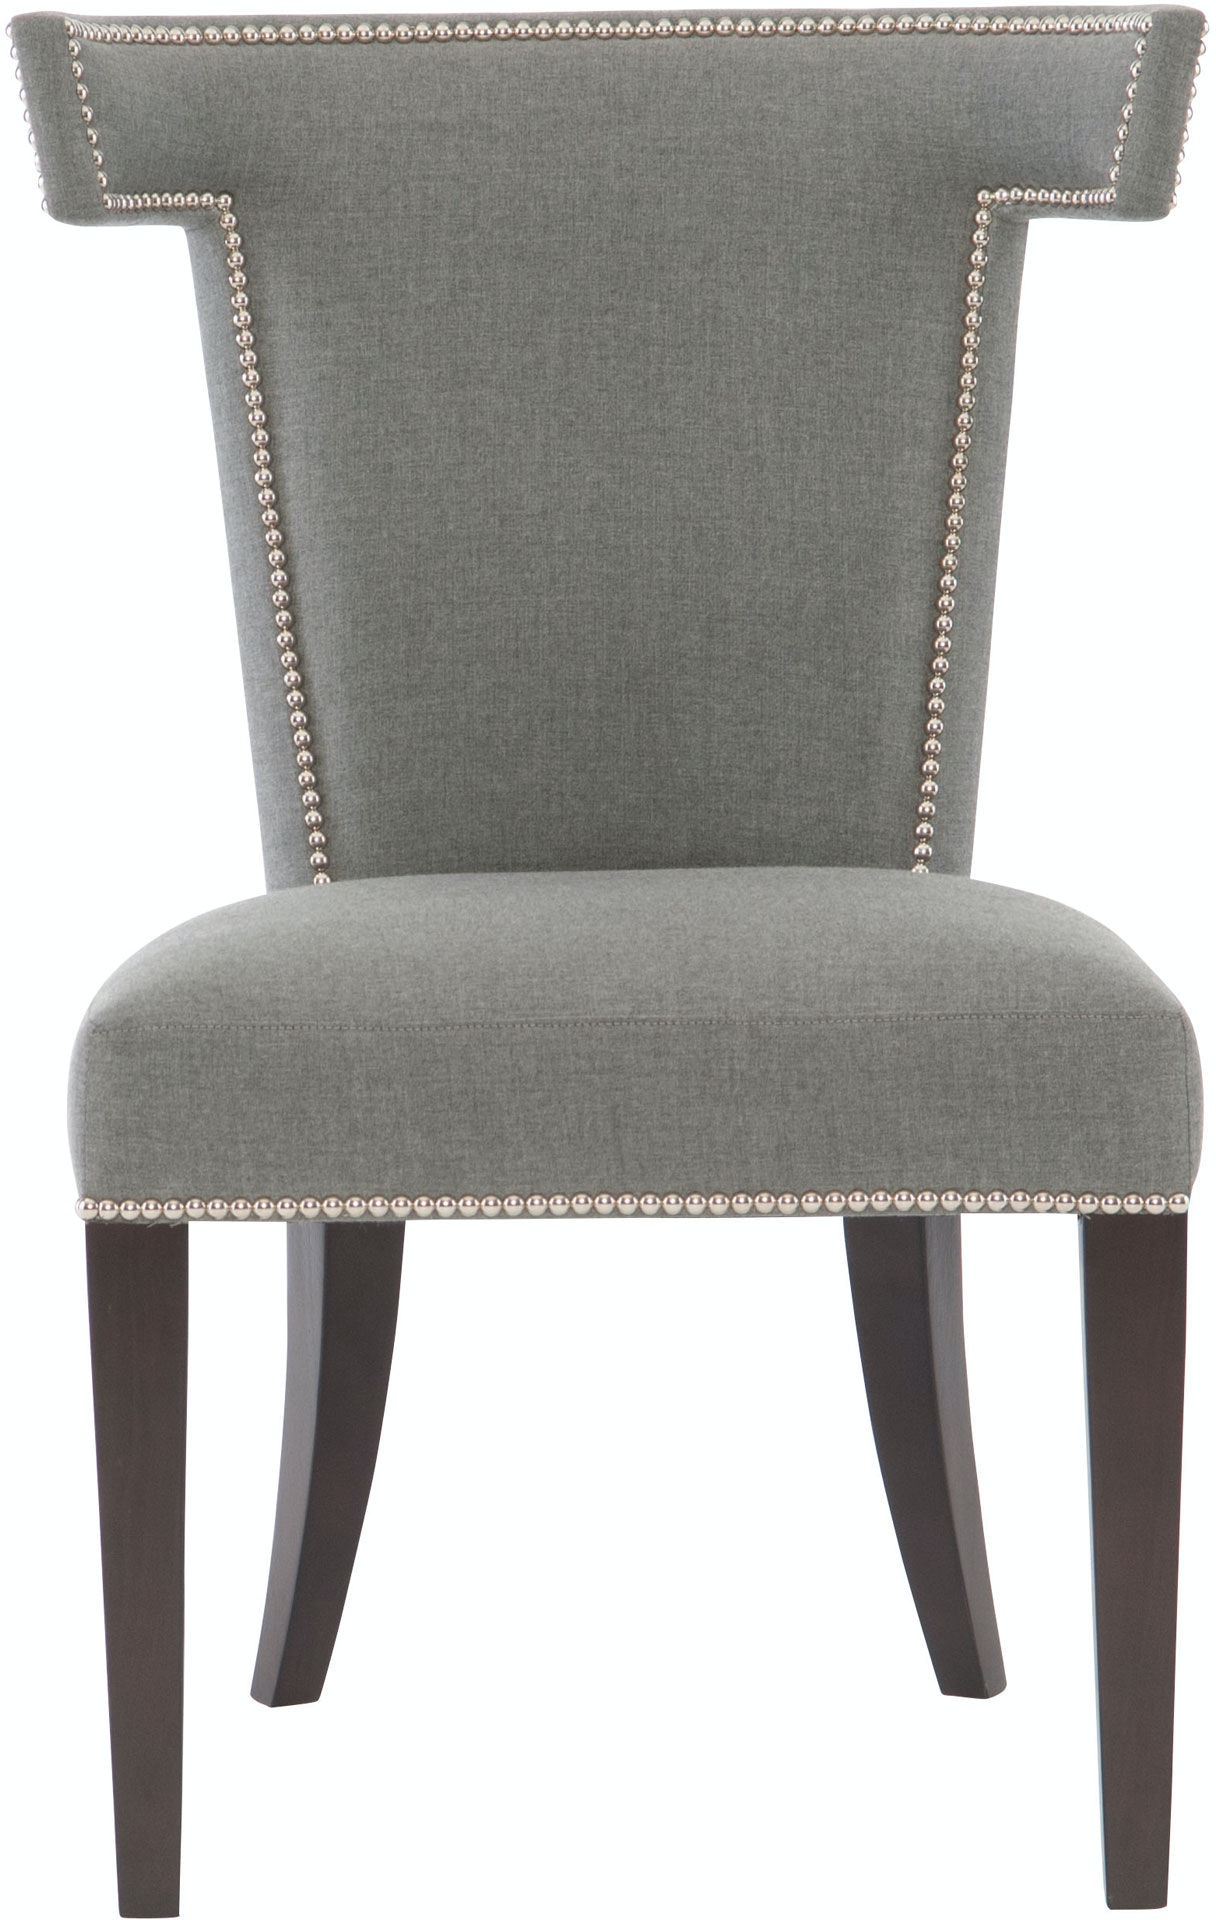 Bernhardt Interiors Dining Room Dining Side Chair 366 562  : 366 562 1 from www.louisshanksfurniture.com size 768 x 576 jpeg 18kB